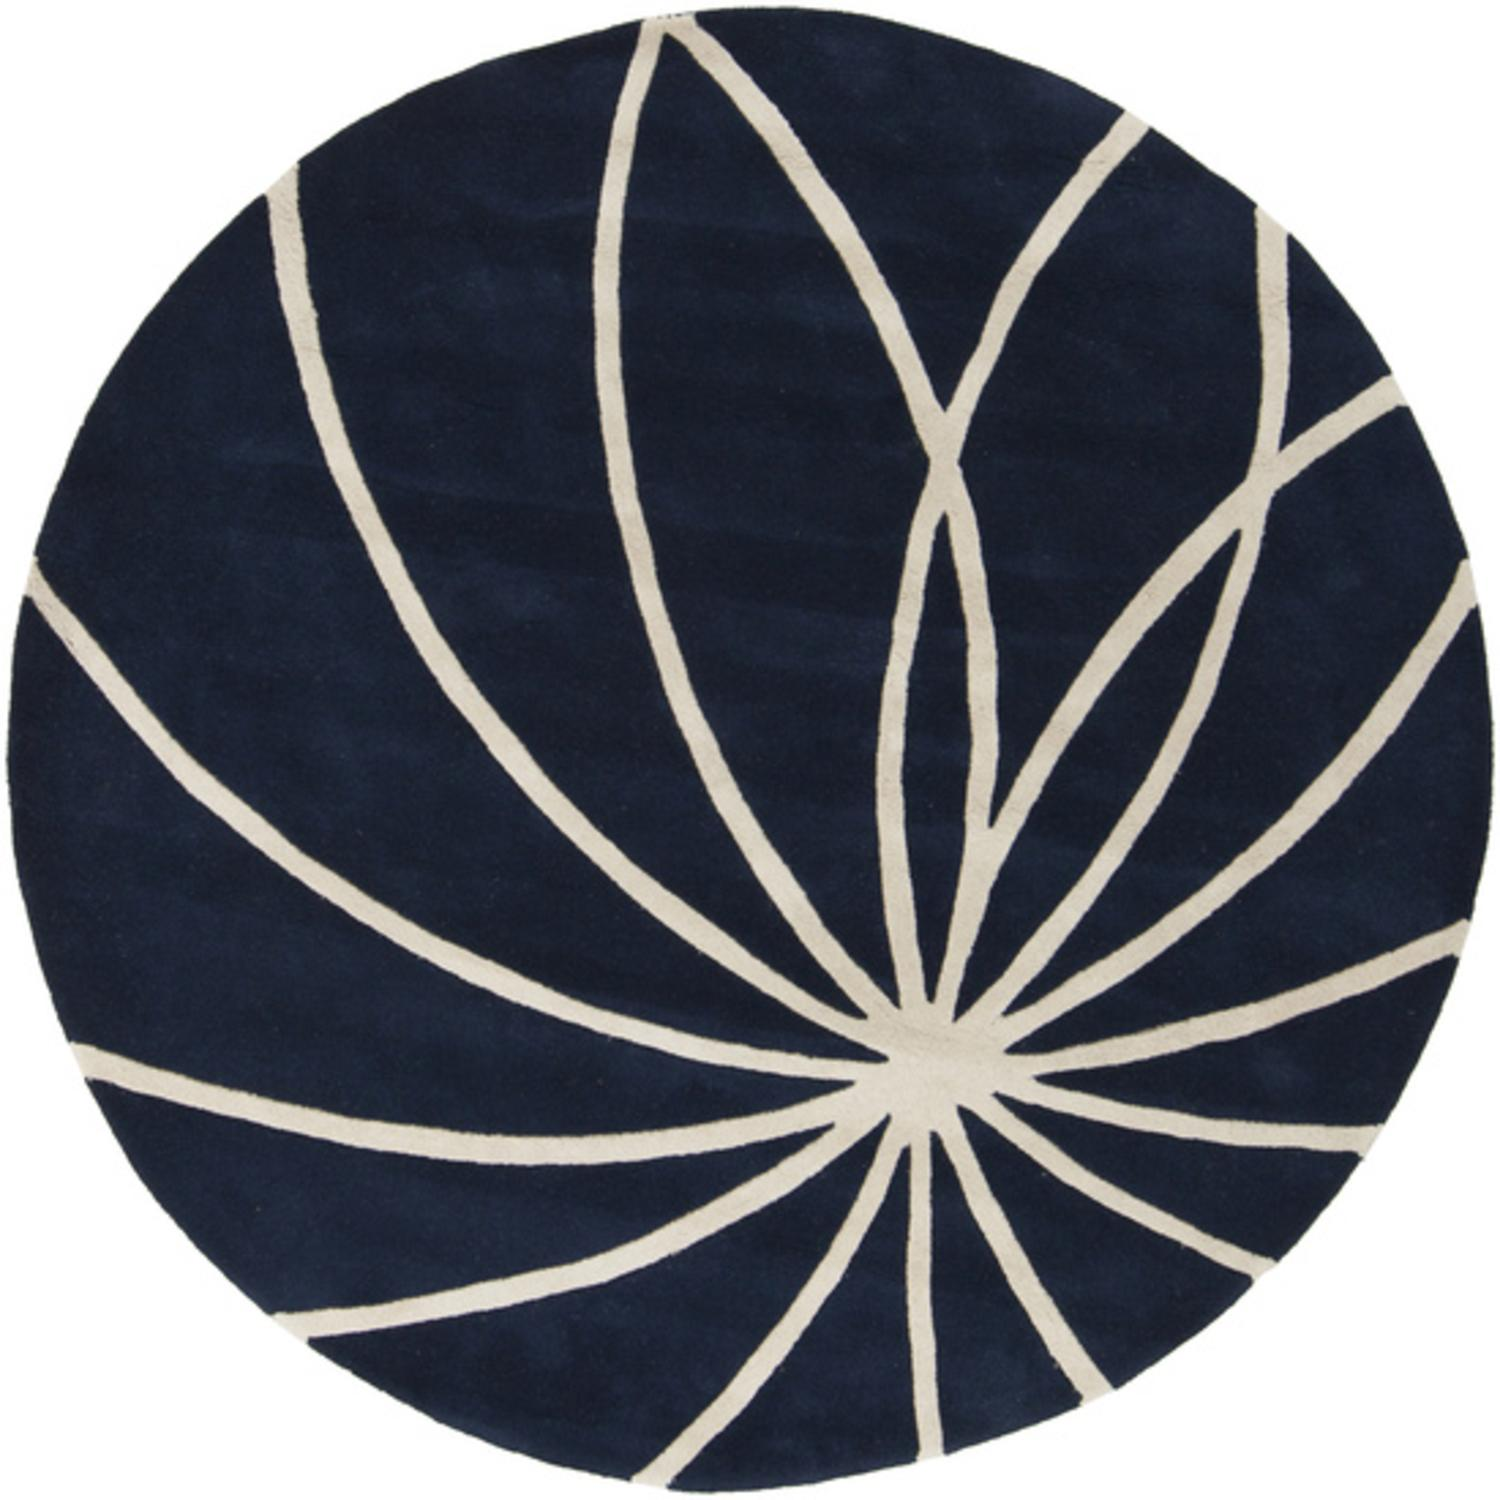 4' Plasma Elektra Antique White and Dark Blue Hand Woven Round Wool Area Rug